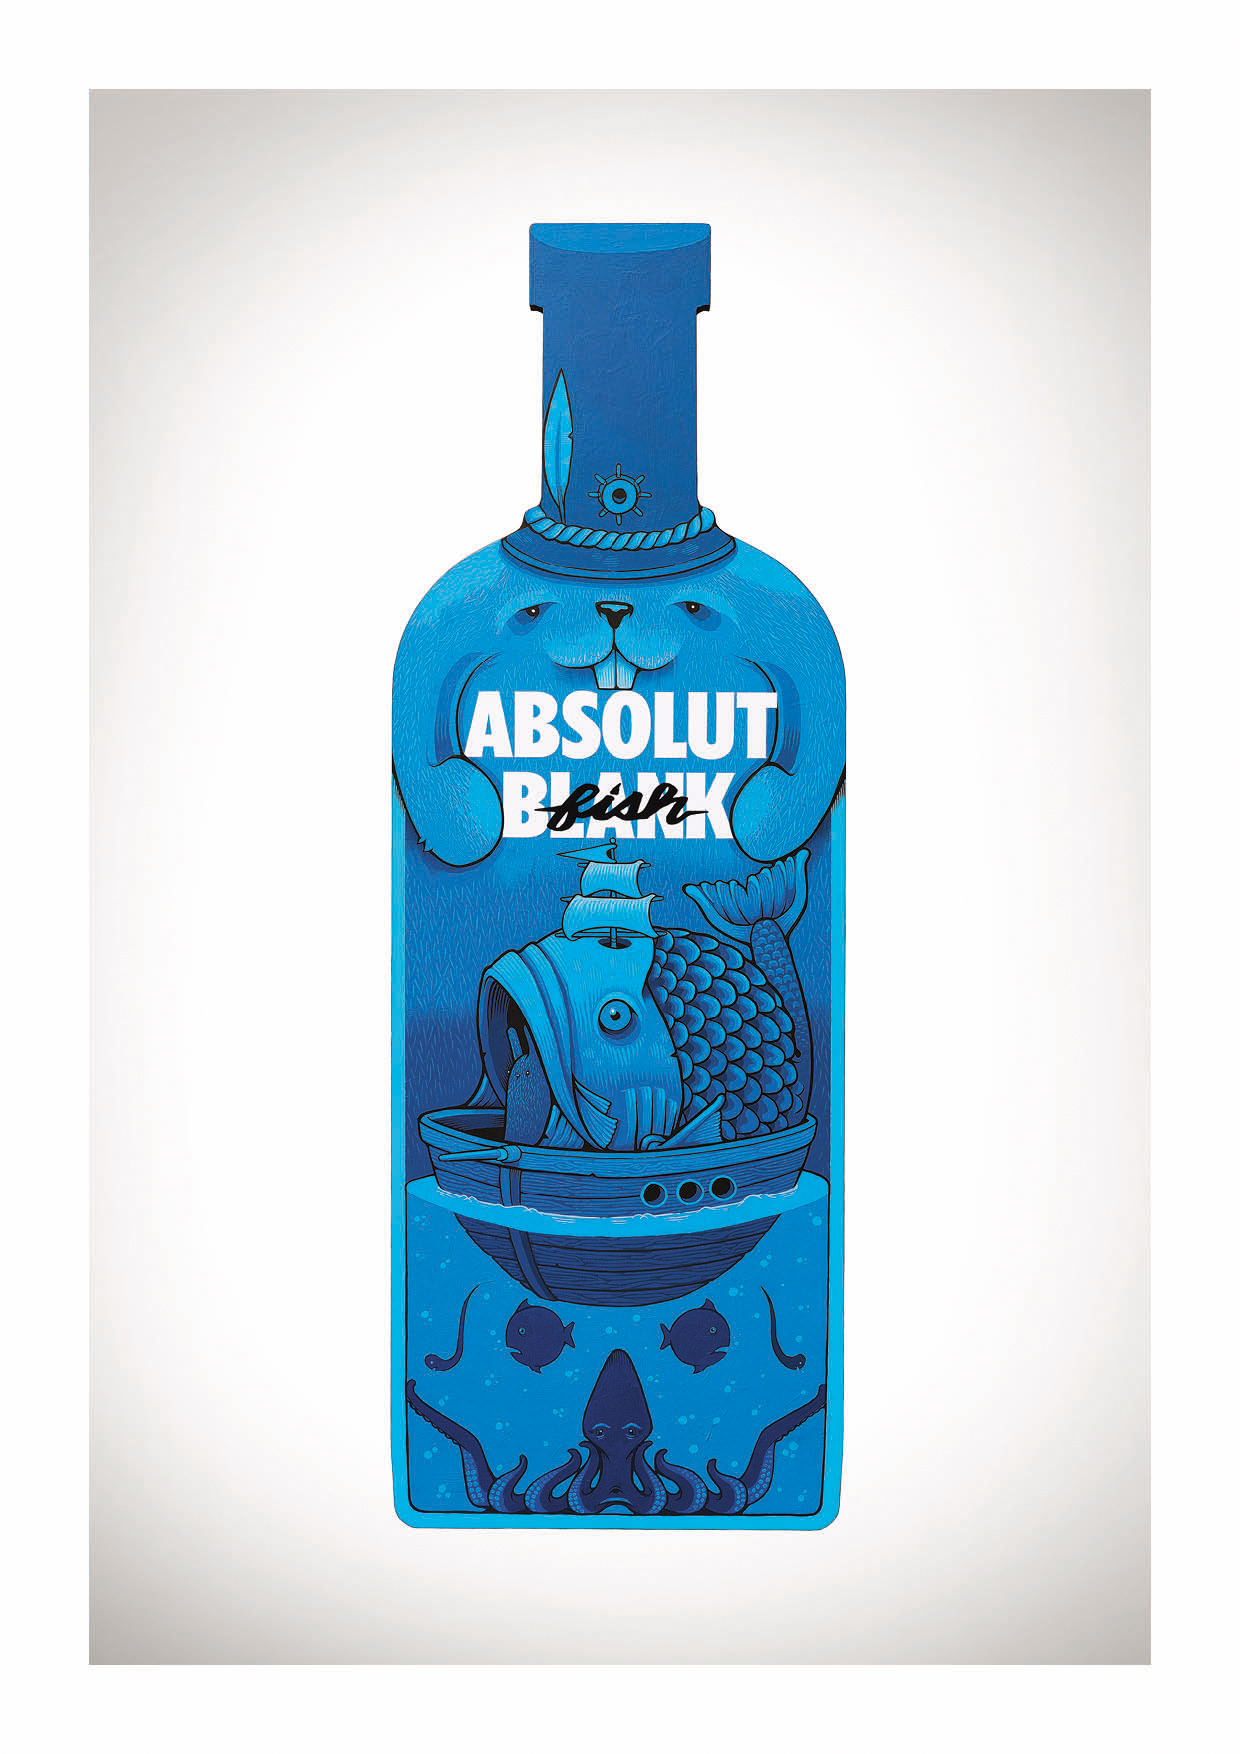 ABSOLUT_FISH